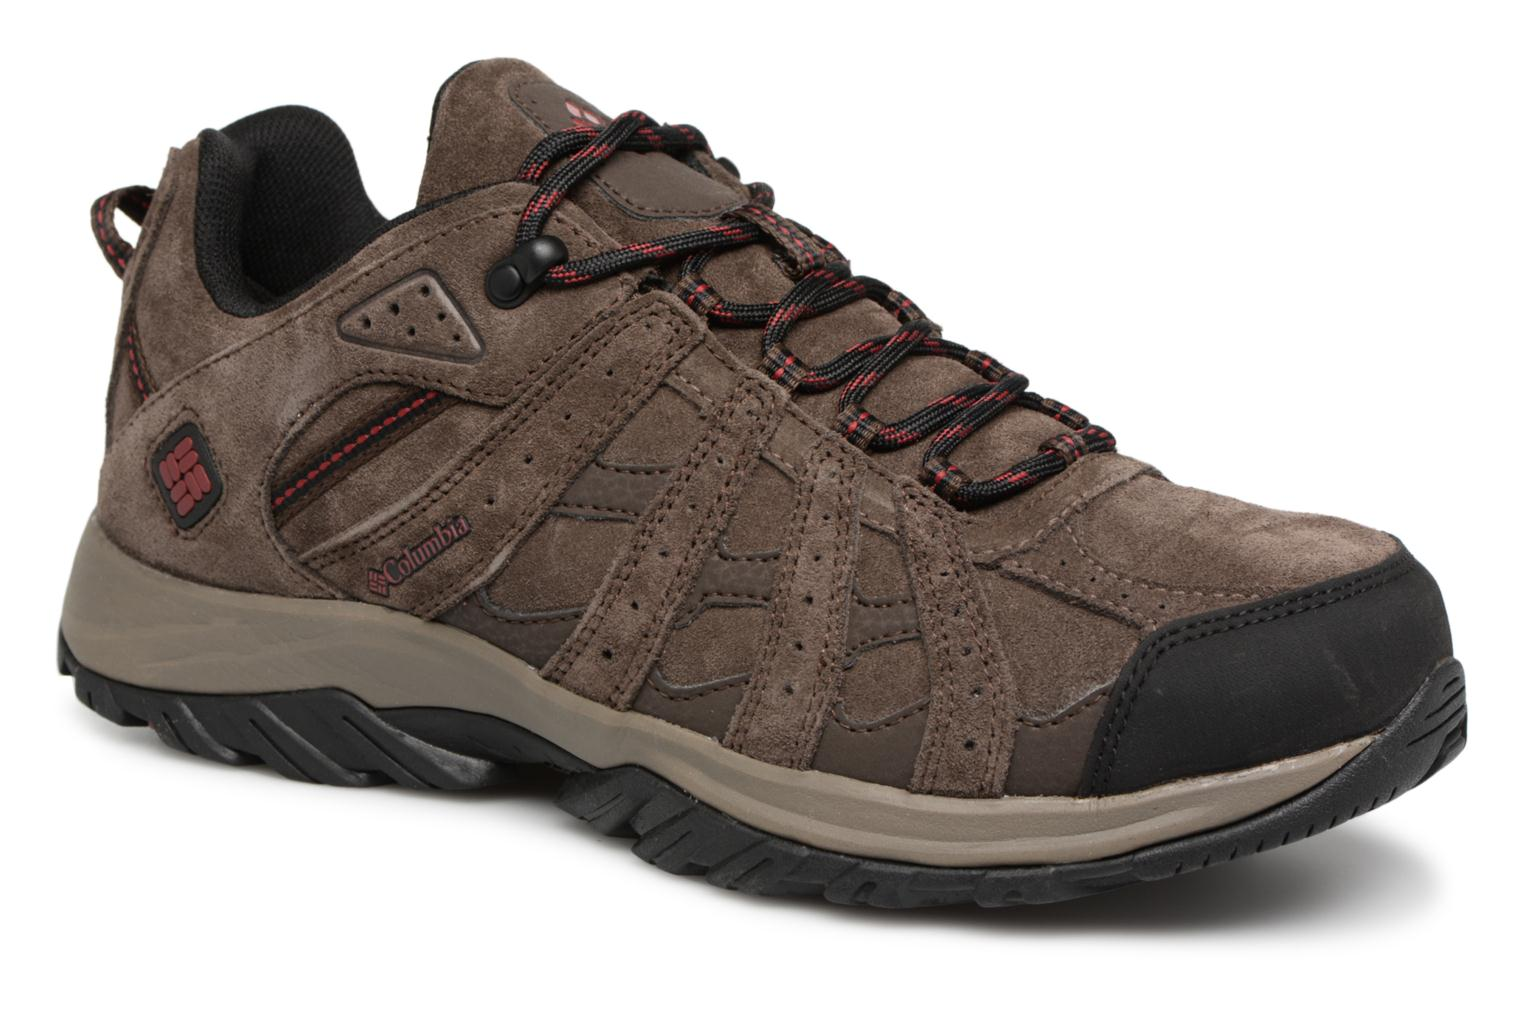 Columbia Canyon Point Leather Omni-Tech (Marron) - Chaussures de sport en Más cómodo Nouvelles chaussures pour hommes et femmes, remise limitée dans le temps